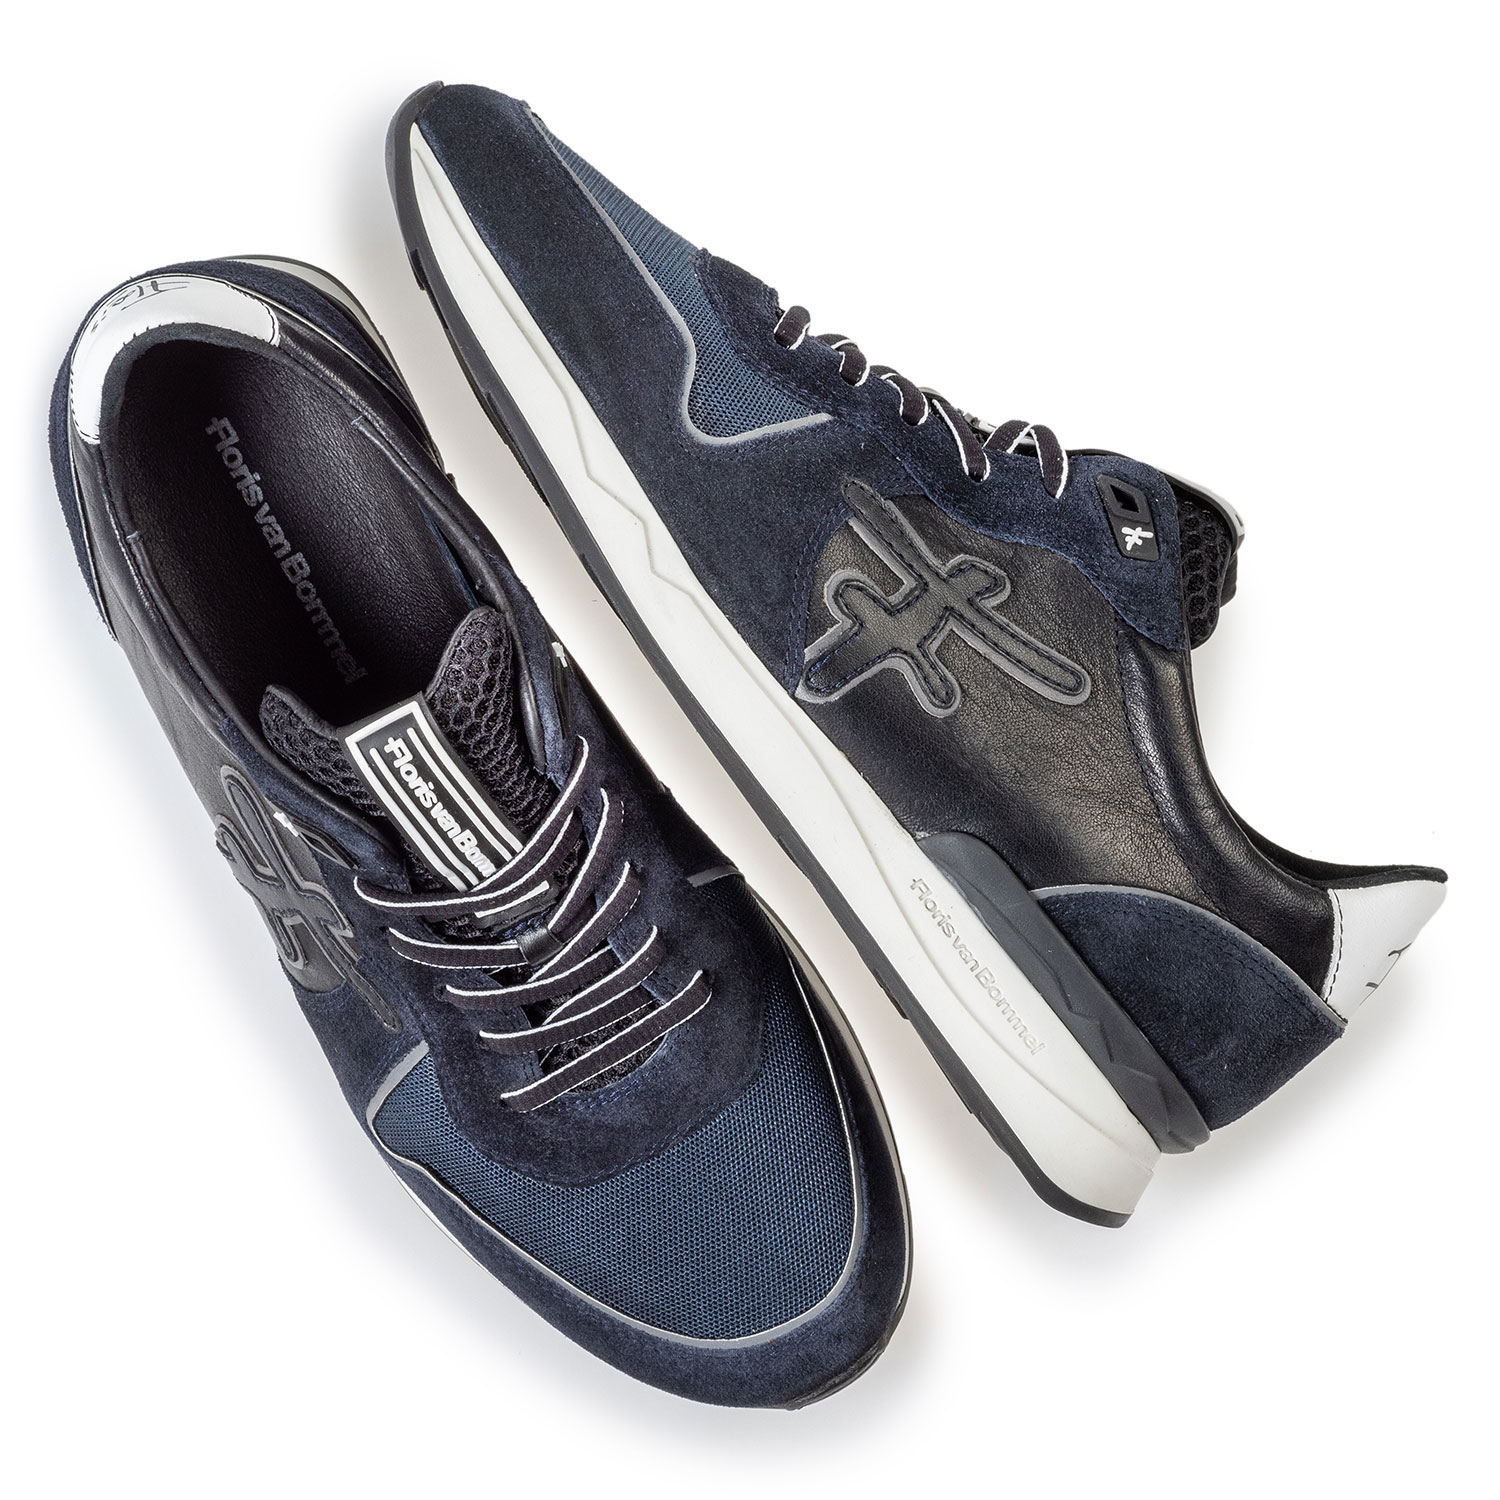 16284/01 - Sneaker dark blue suede leather